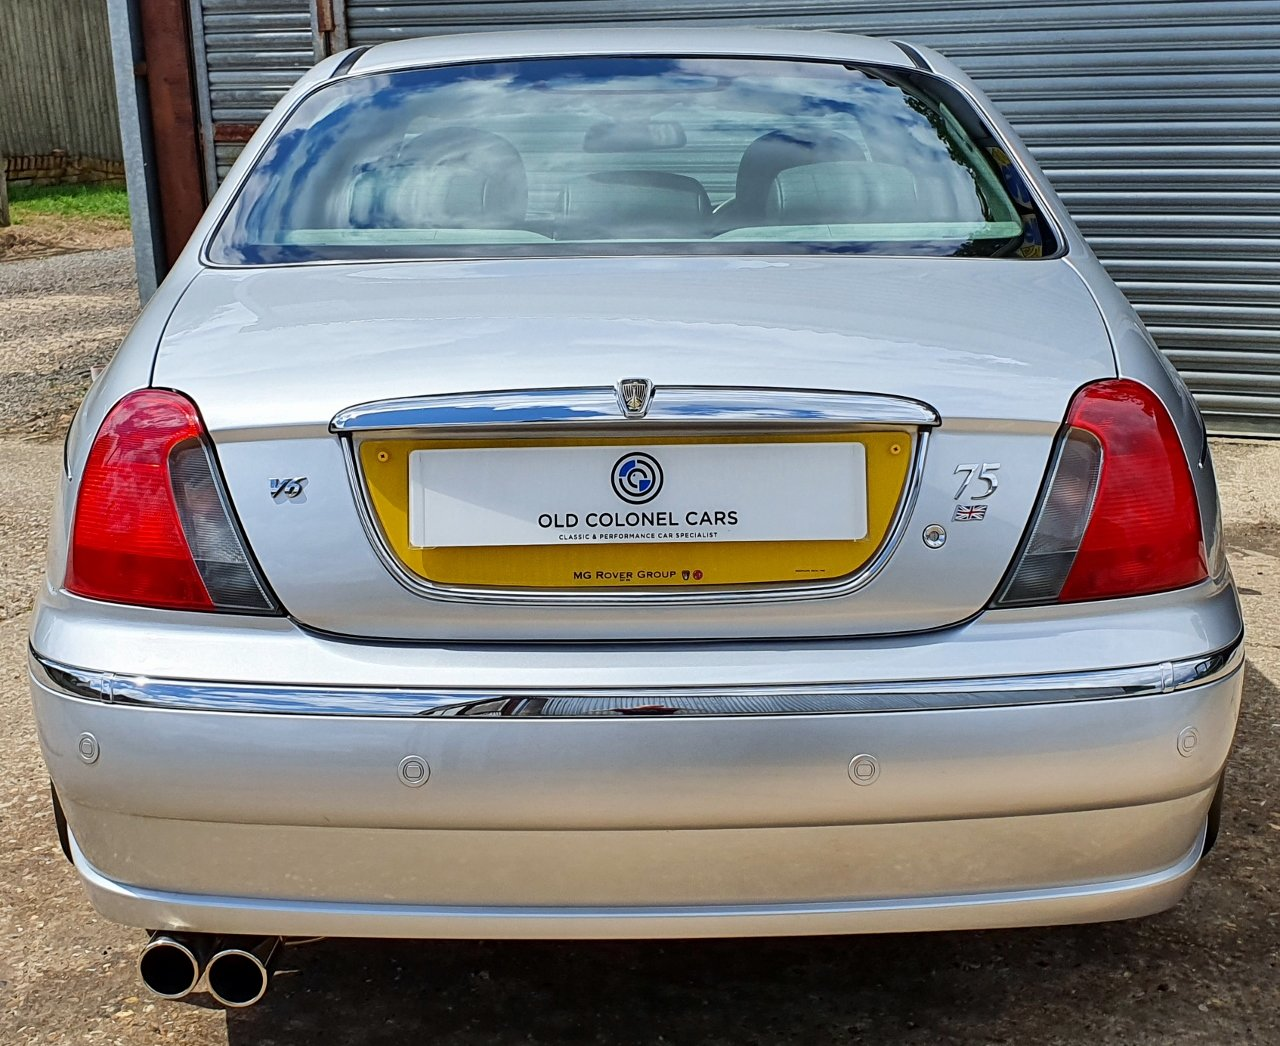 2003 ONLY 34,000 Miles - Rover 75 Connoisseur SE 2.5 V6 - 1 Owner SOLD (picture 6 of 10)